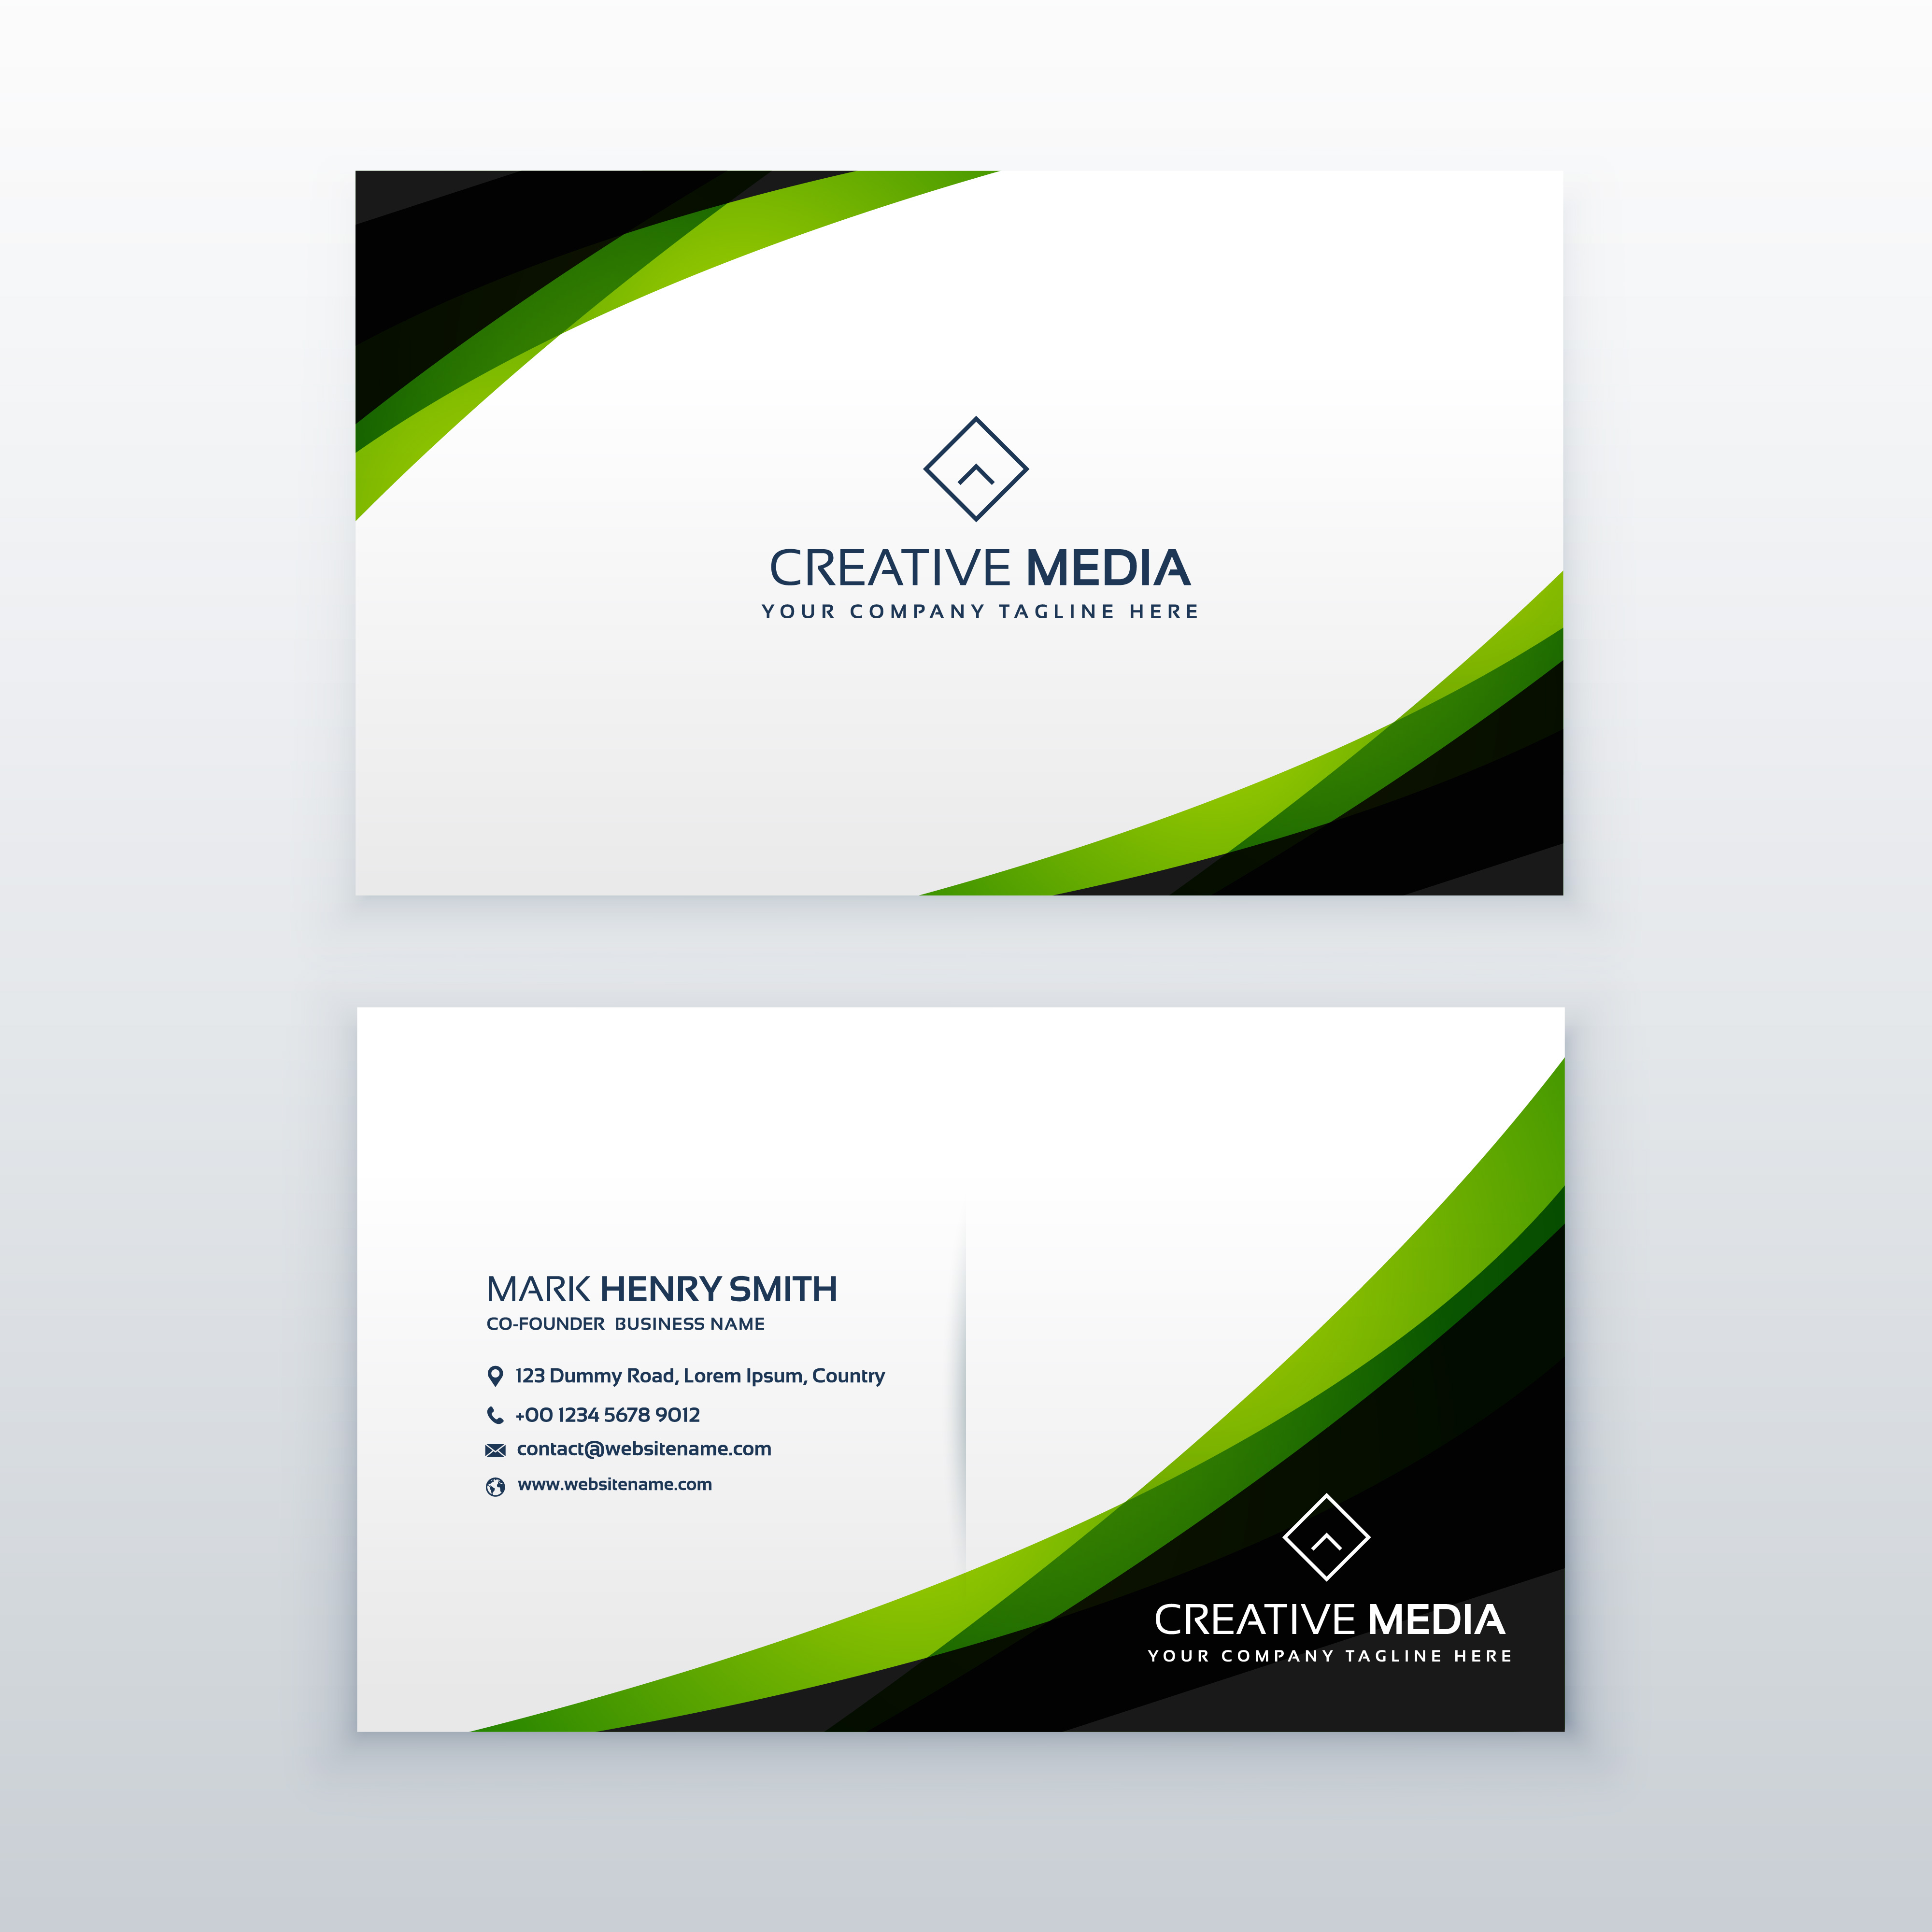 Clean Simple Green Business Card Design Template